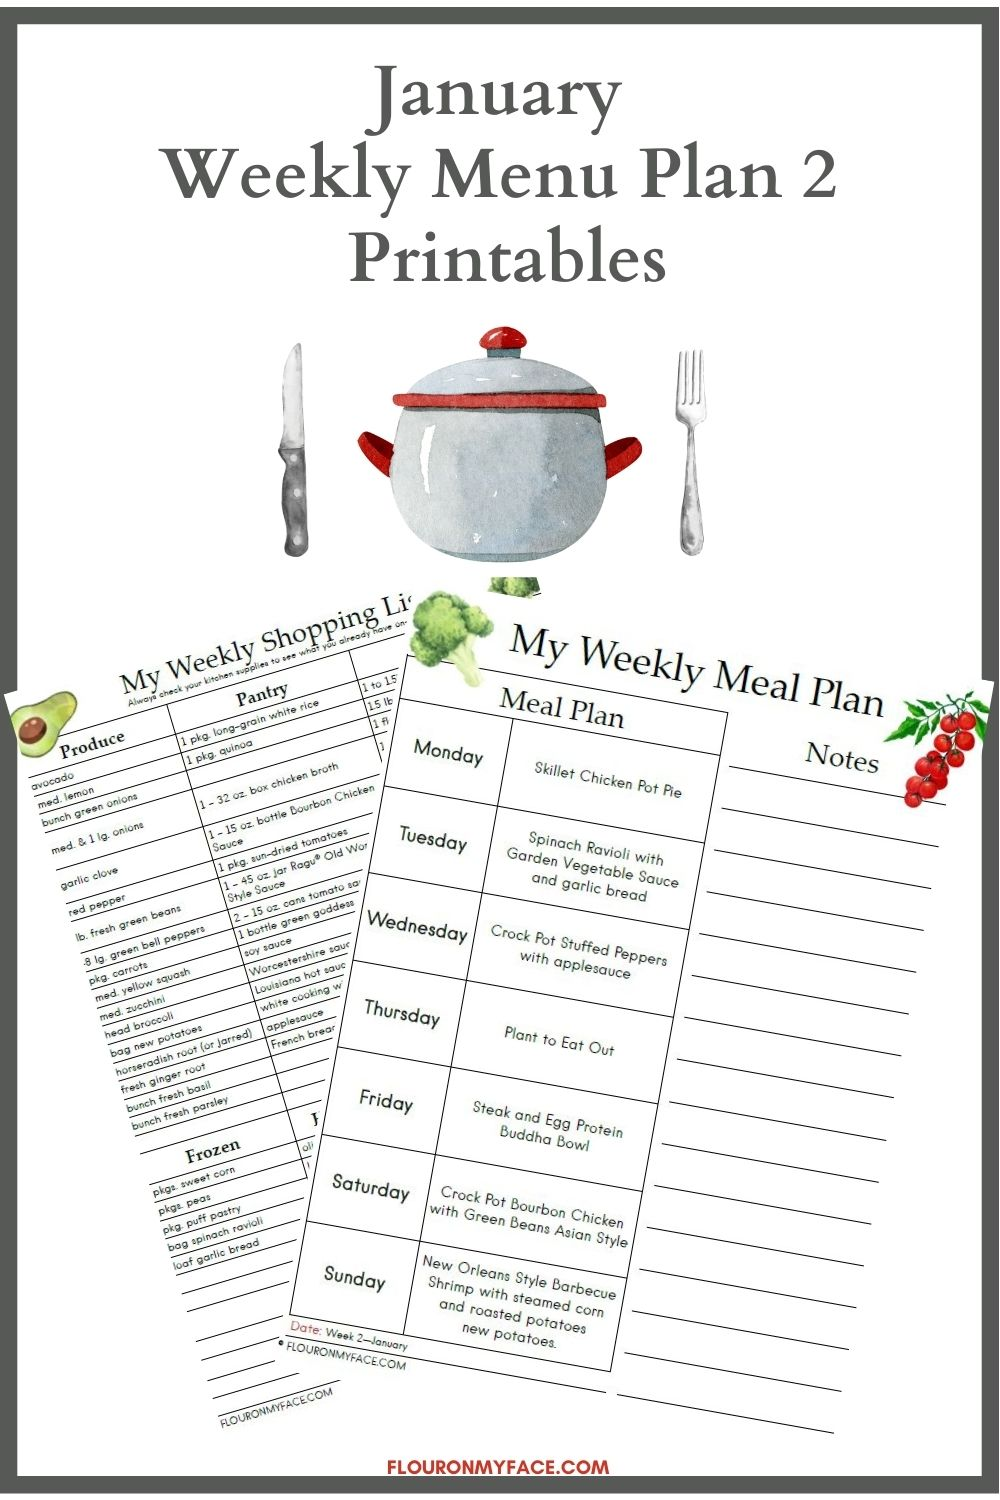 A preview image of the weekly menu plan printables.